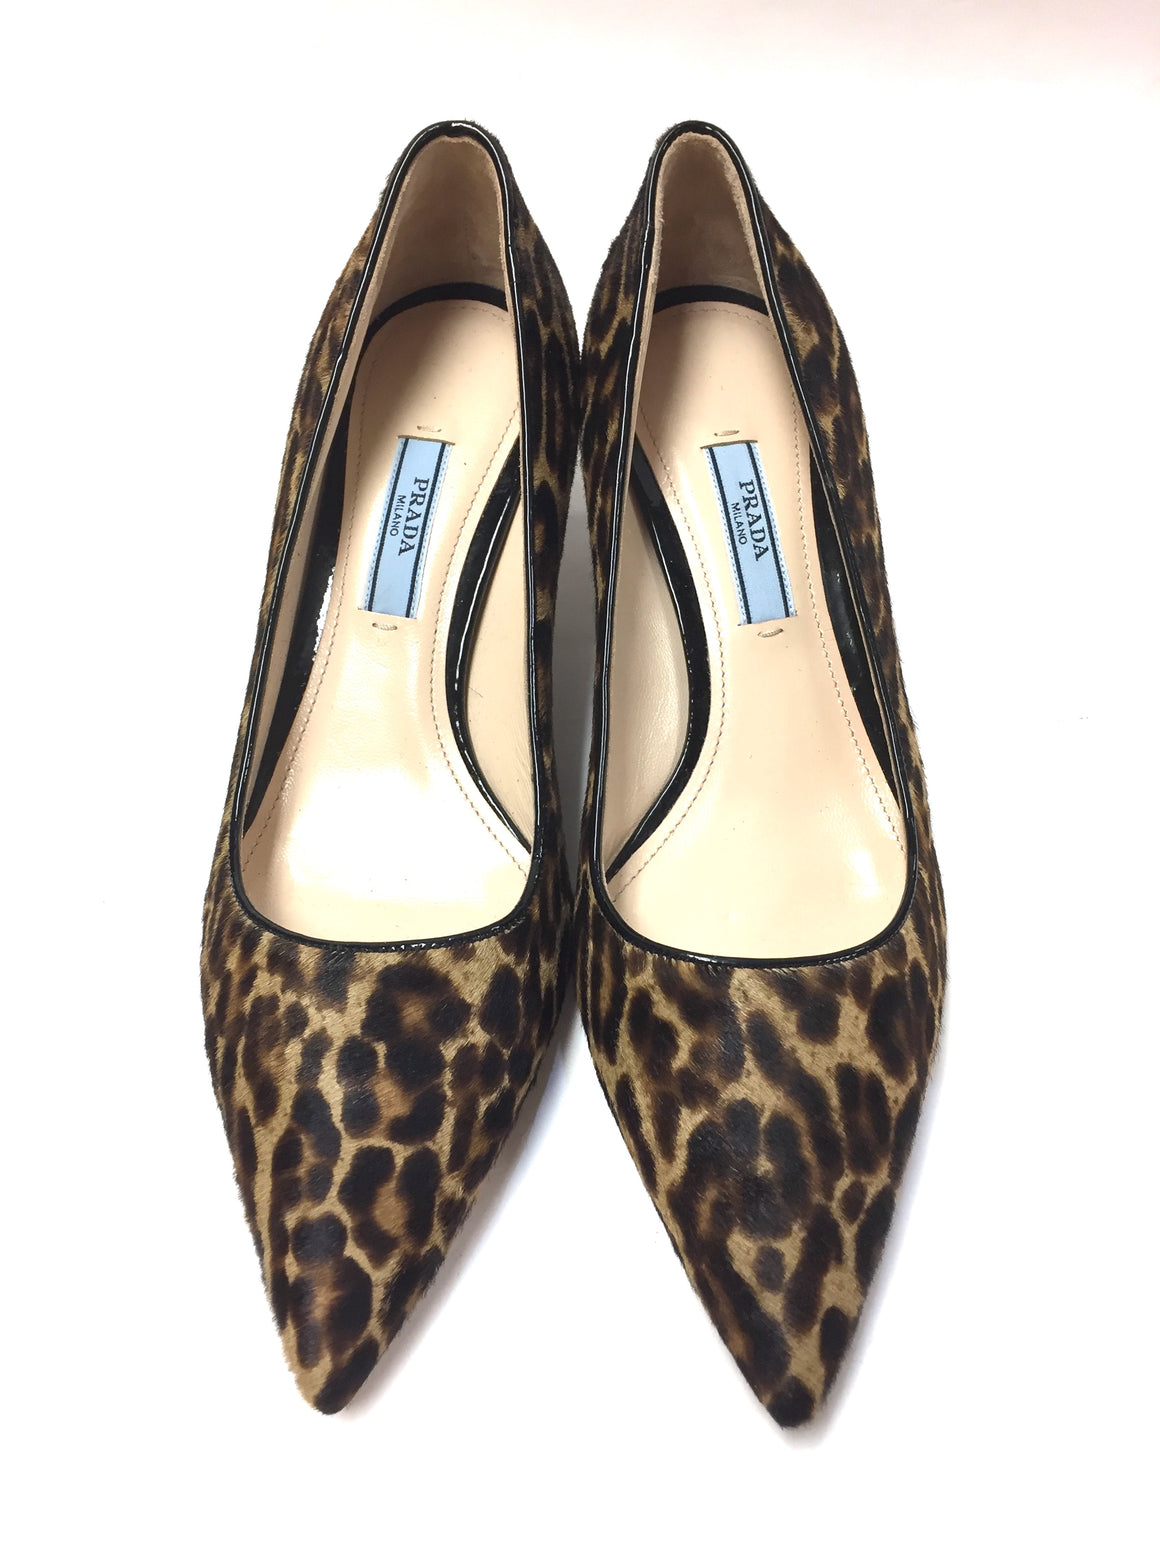 PRADA  New Beige/Tan/Brown Animal-Print Calf Hair Kitten Heel Pumps Shoes Size: 36.5 / 6.5